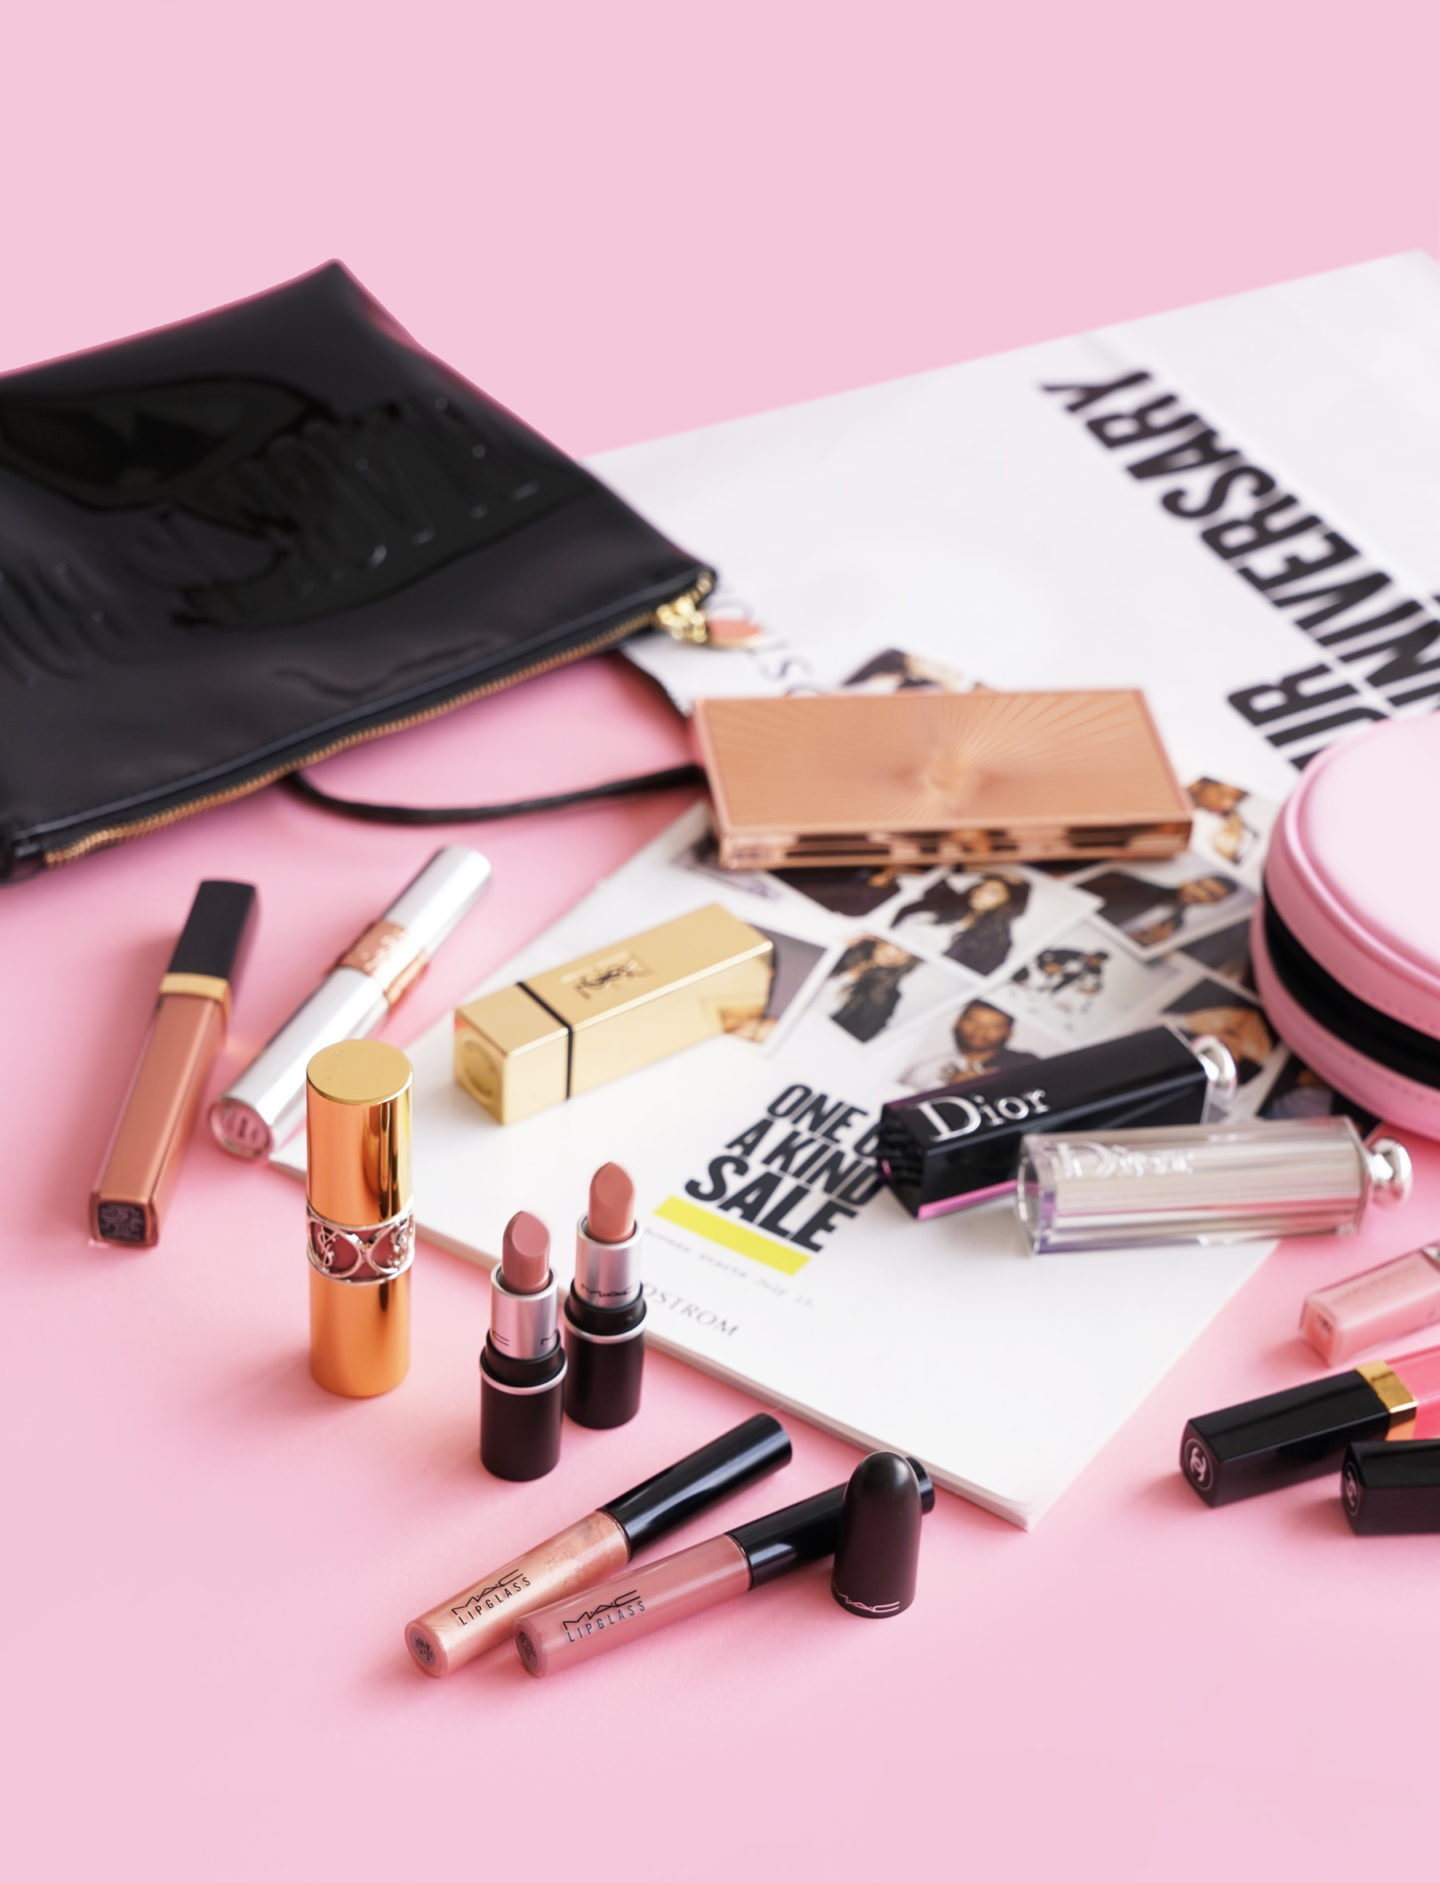 Nordstrom Anniversary Sale Beauty Exclusives Lip Haul | The Beauty Look Book